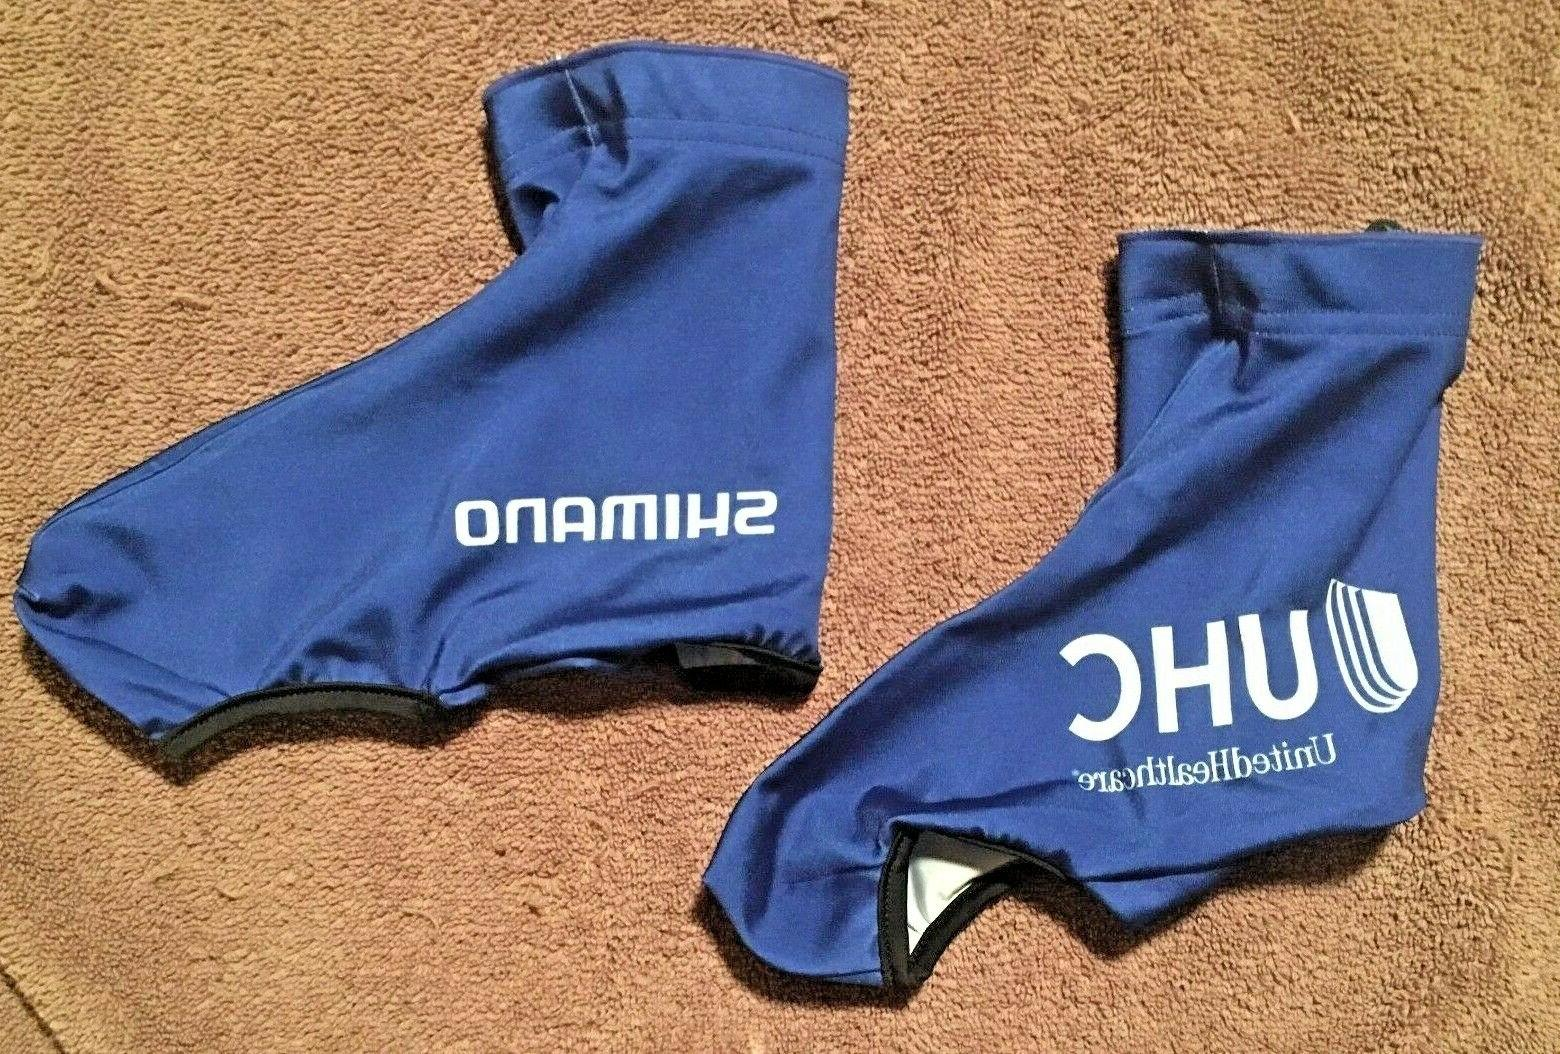 united healthcare shimano thermal cycling shoe covers